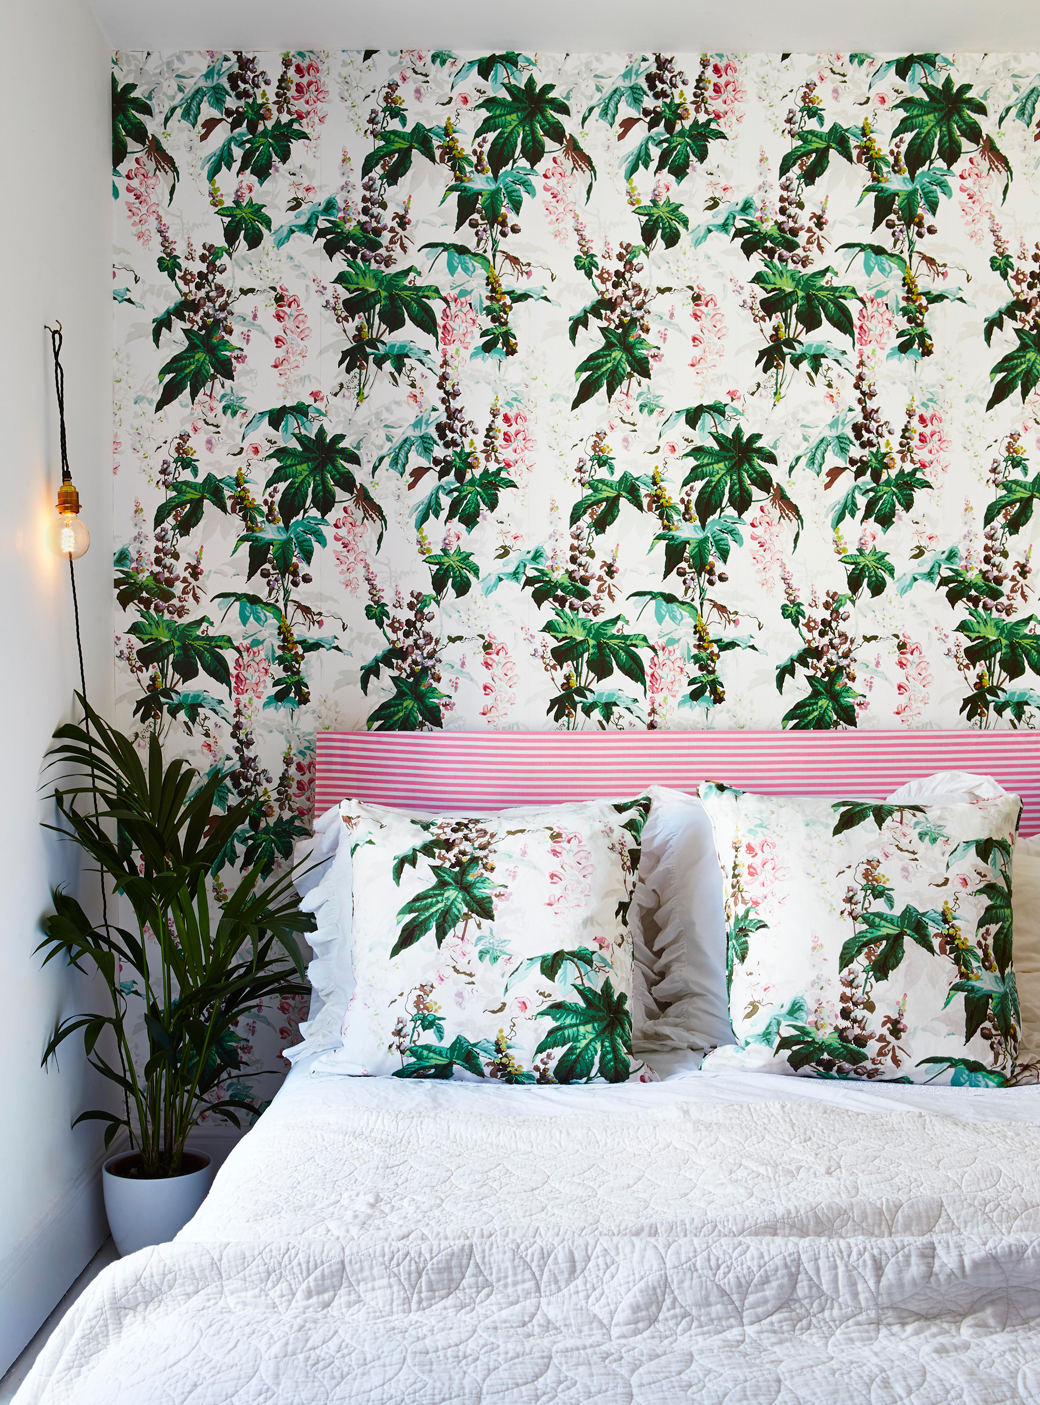 7 easy ways to create botanical style at home decor8 for Where can i get wallpaper for my room